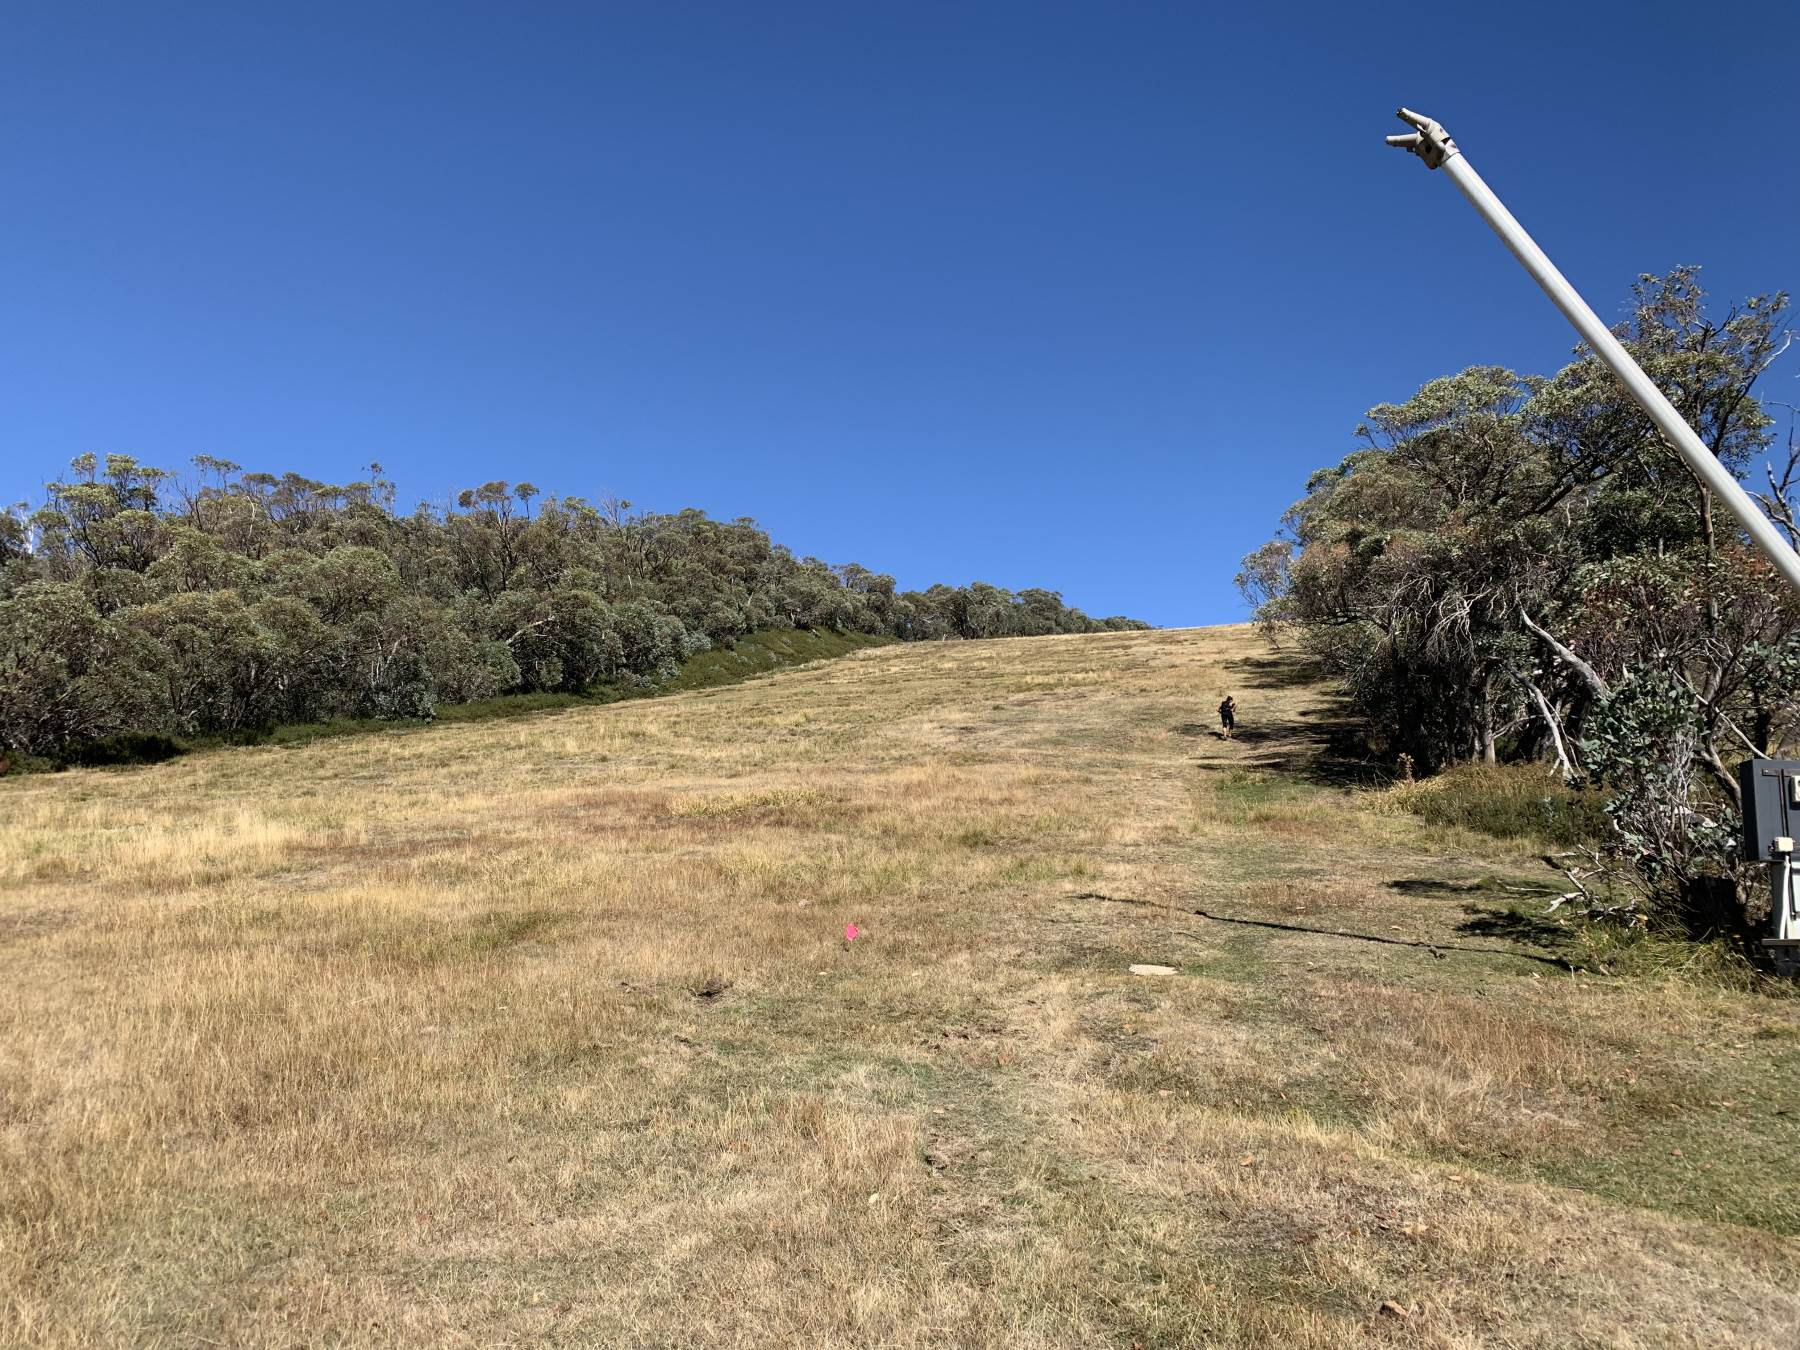 Northside Express ski run - getting closer to the summit of Mt Buller